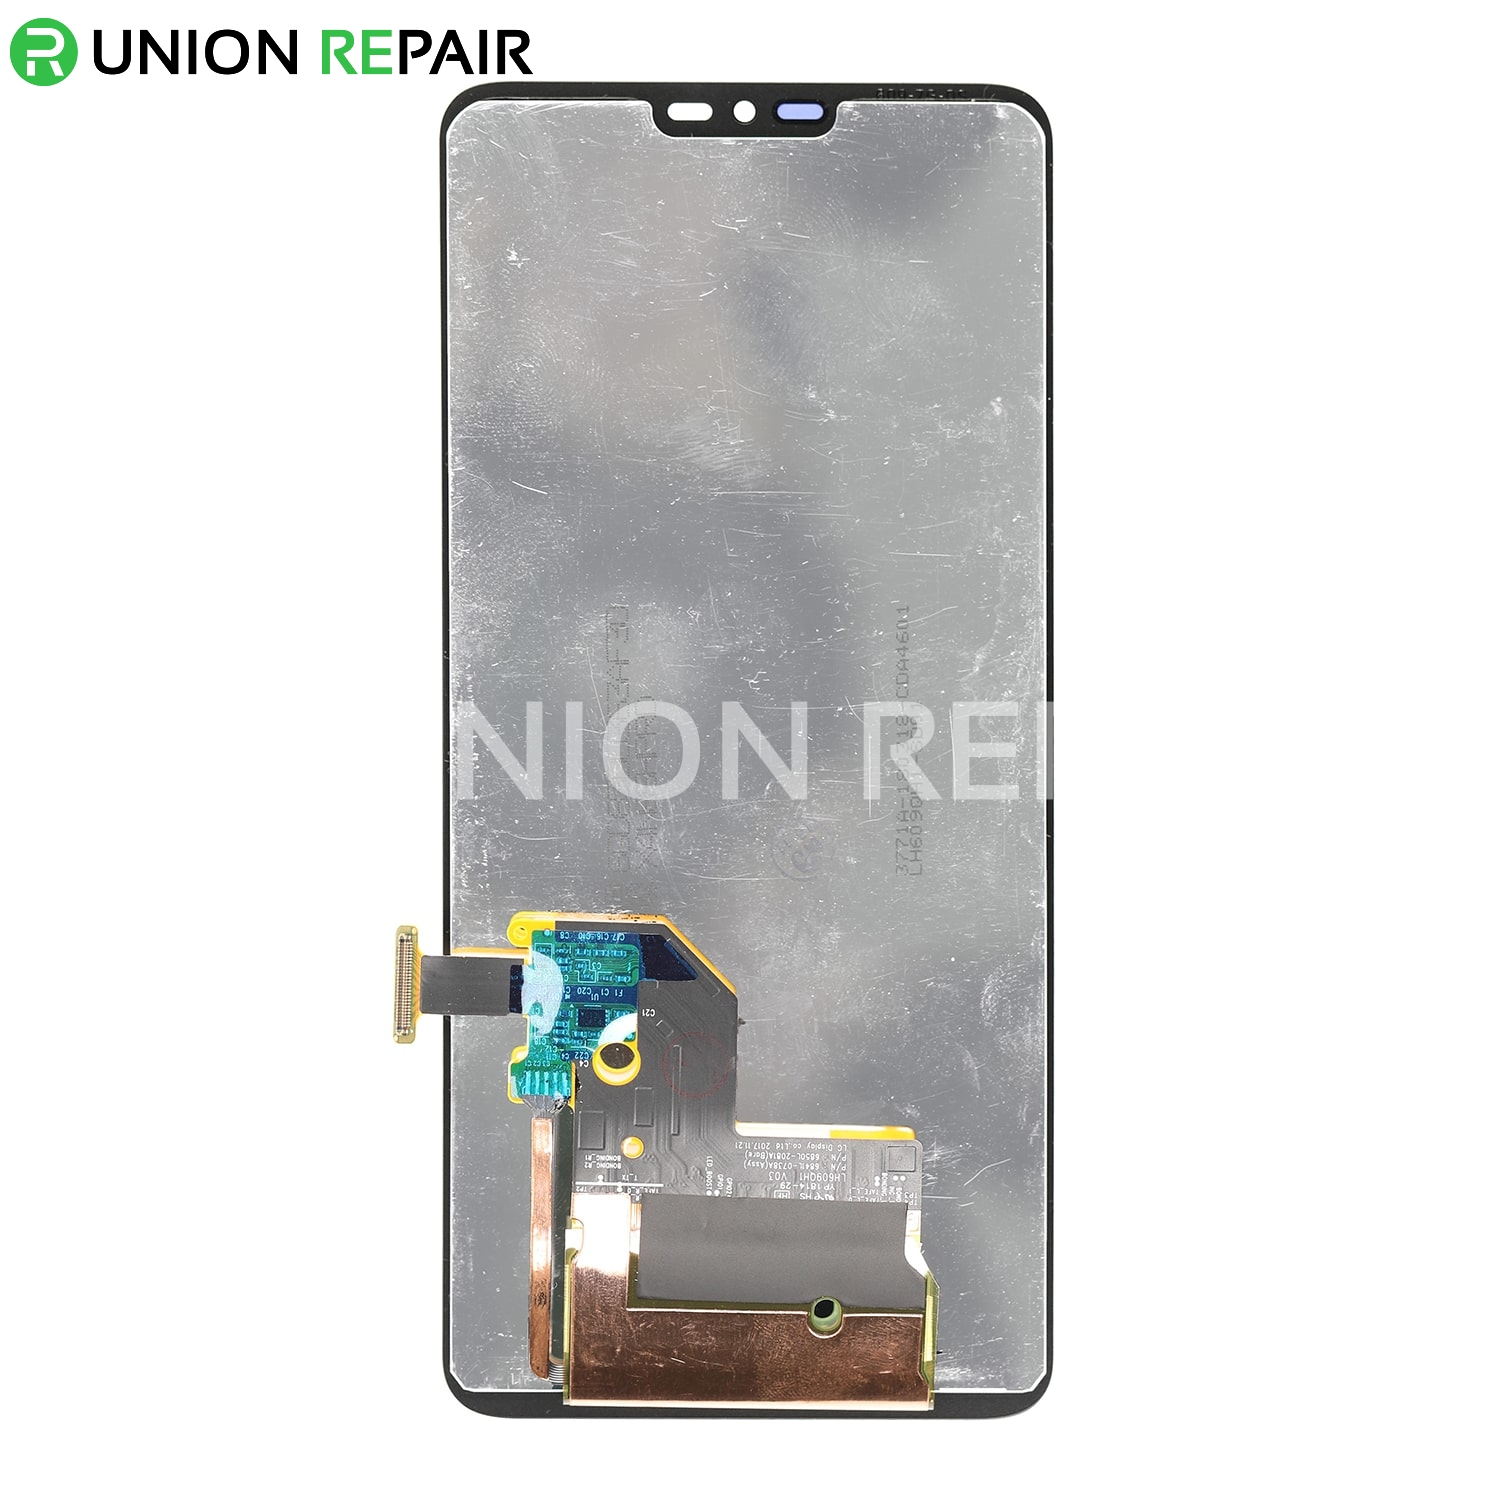 Replacement for LG G7 ThinQ LCD Screen with Digitizer Assembly - Black